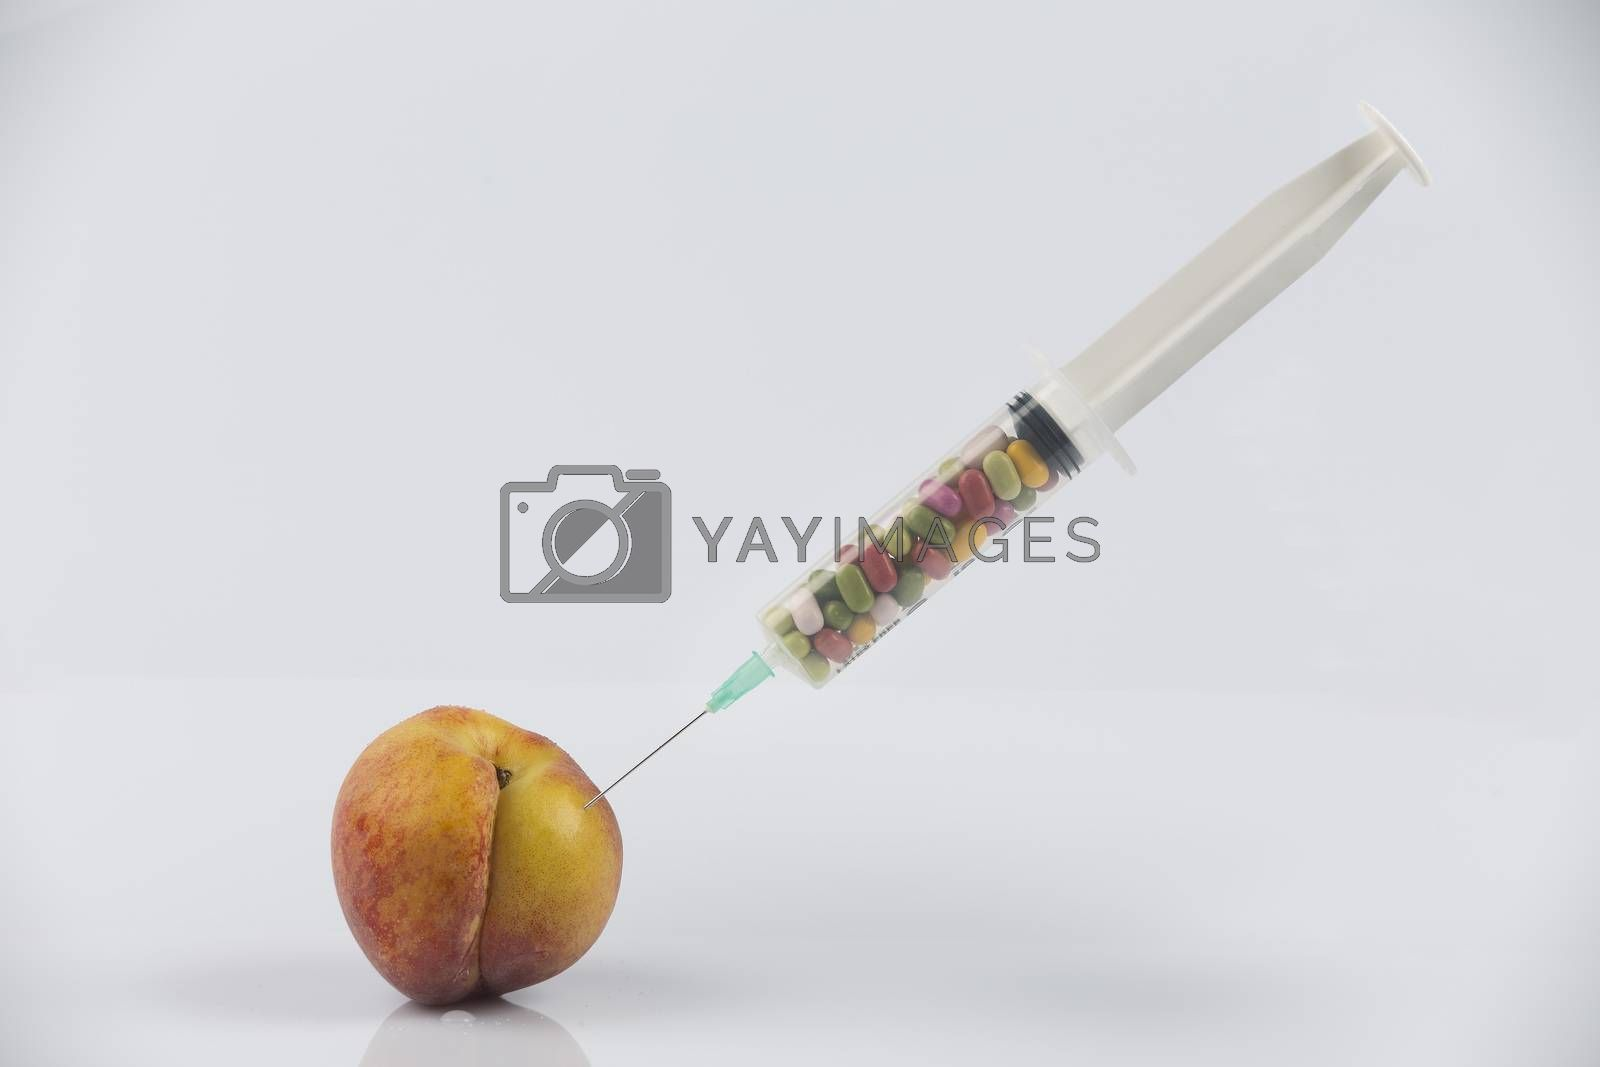 Female menopause and sexual disease metaphor: peach and syringe with meaning cosmetic and health treatment for female ageing